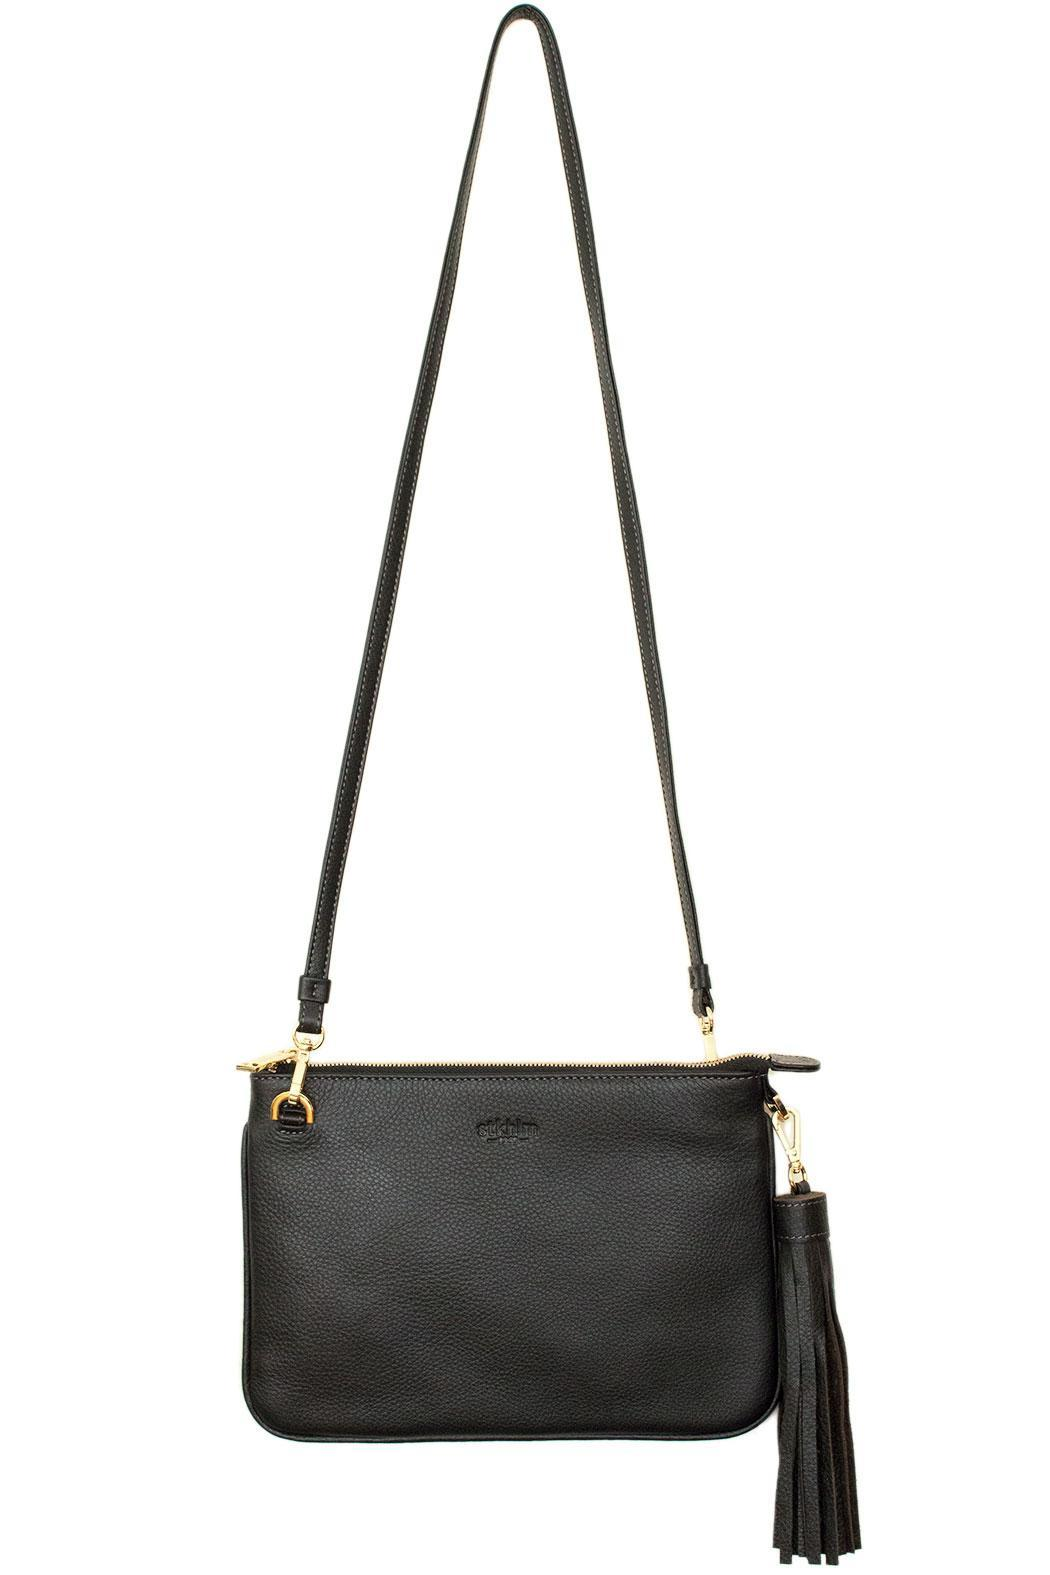 estocolmoapparel Black Leather Cross Body - Side Cropped Image